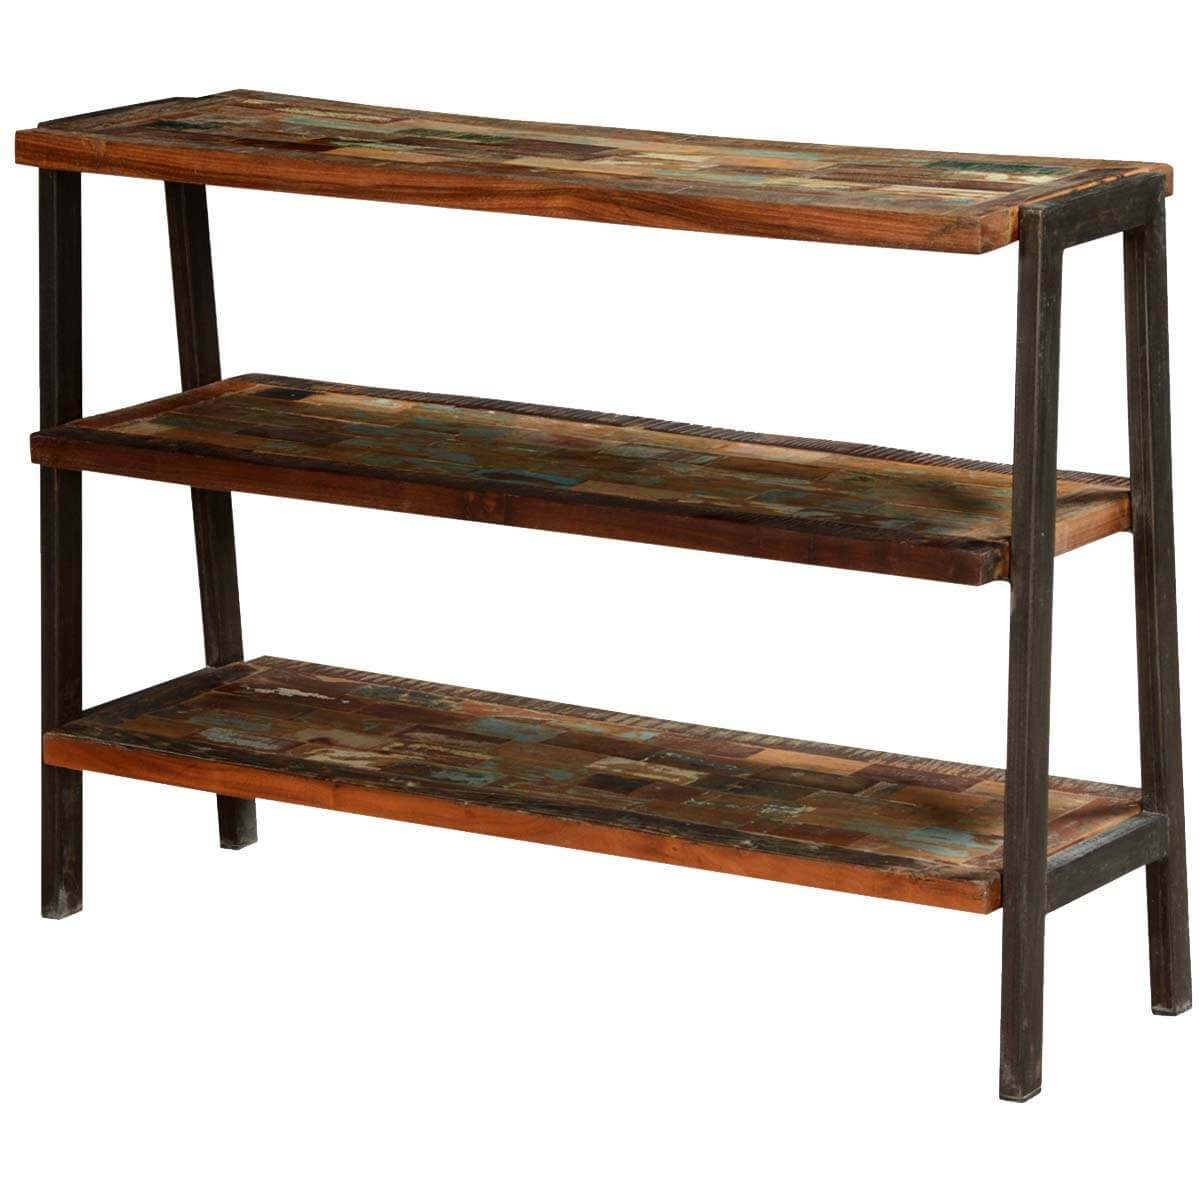 painted bricks reclaimed wood iron 3 open shelf console. Black Bedroom Furniture Sets. Home Design Ideas